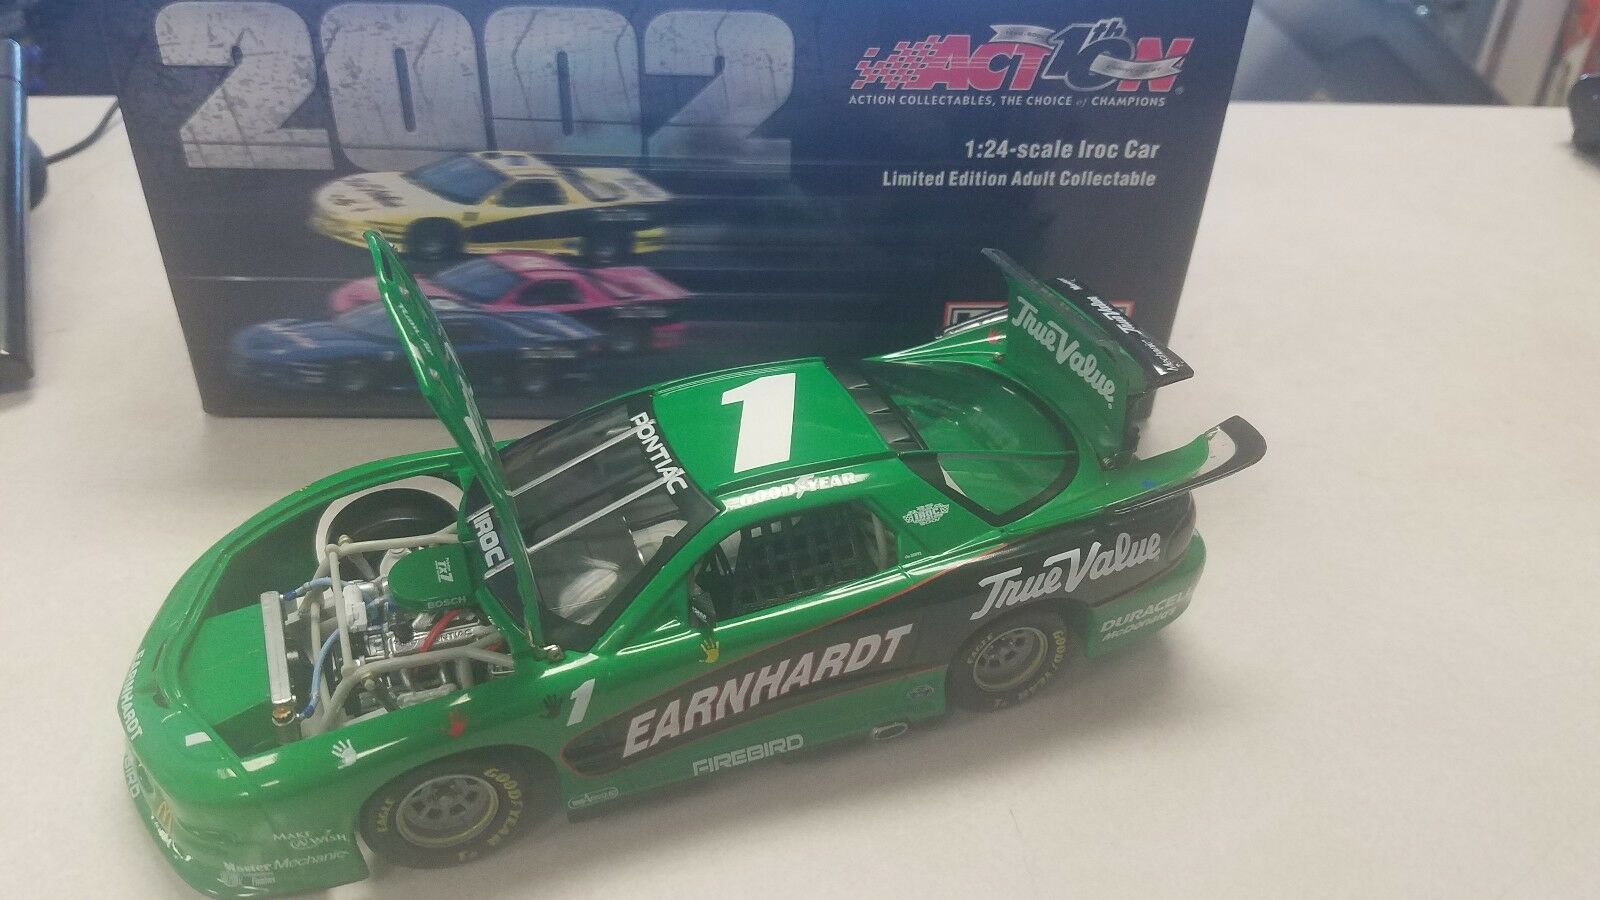 Dale Earnhardt 2001 Iroc Make A Wish Vert 1 24 Action Firebird Voiture